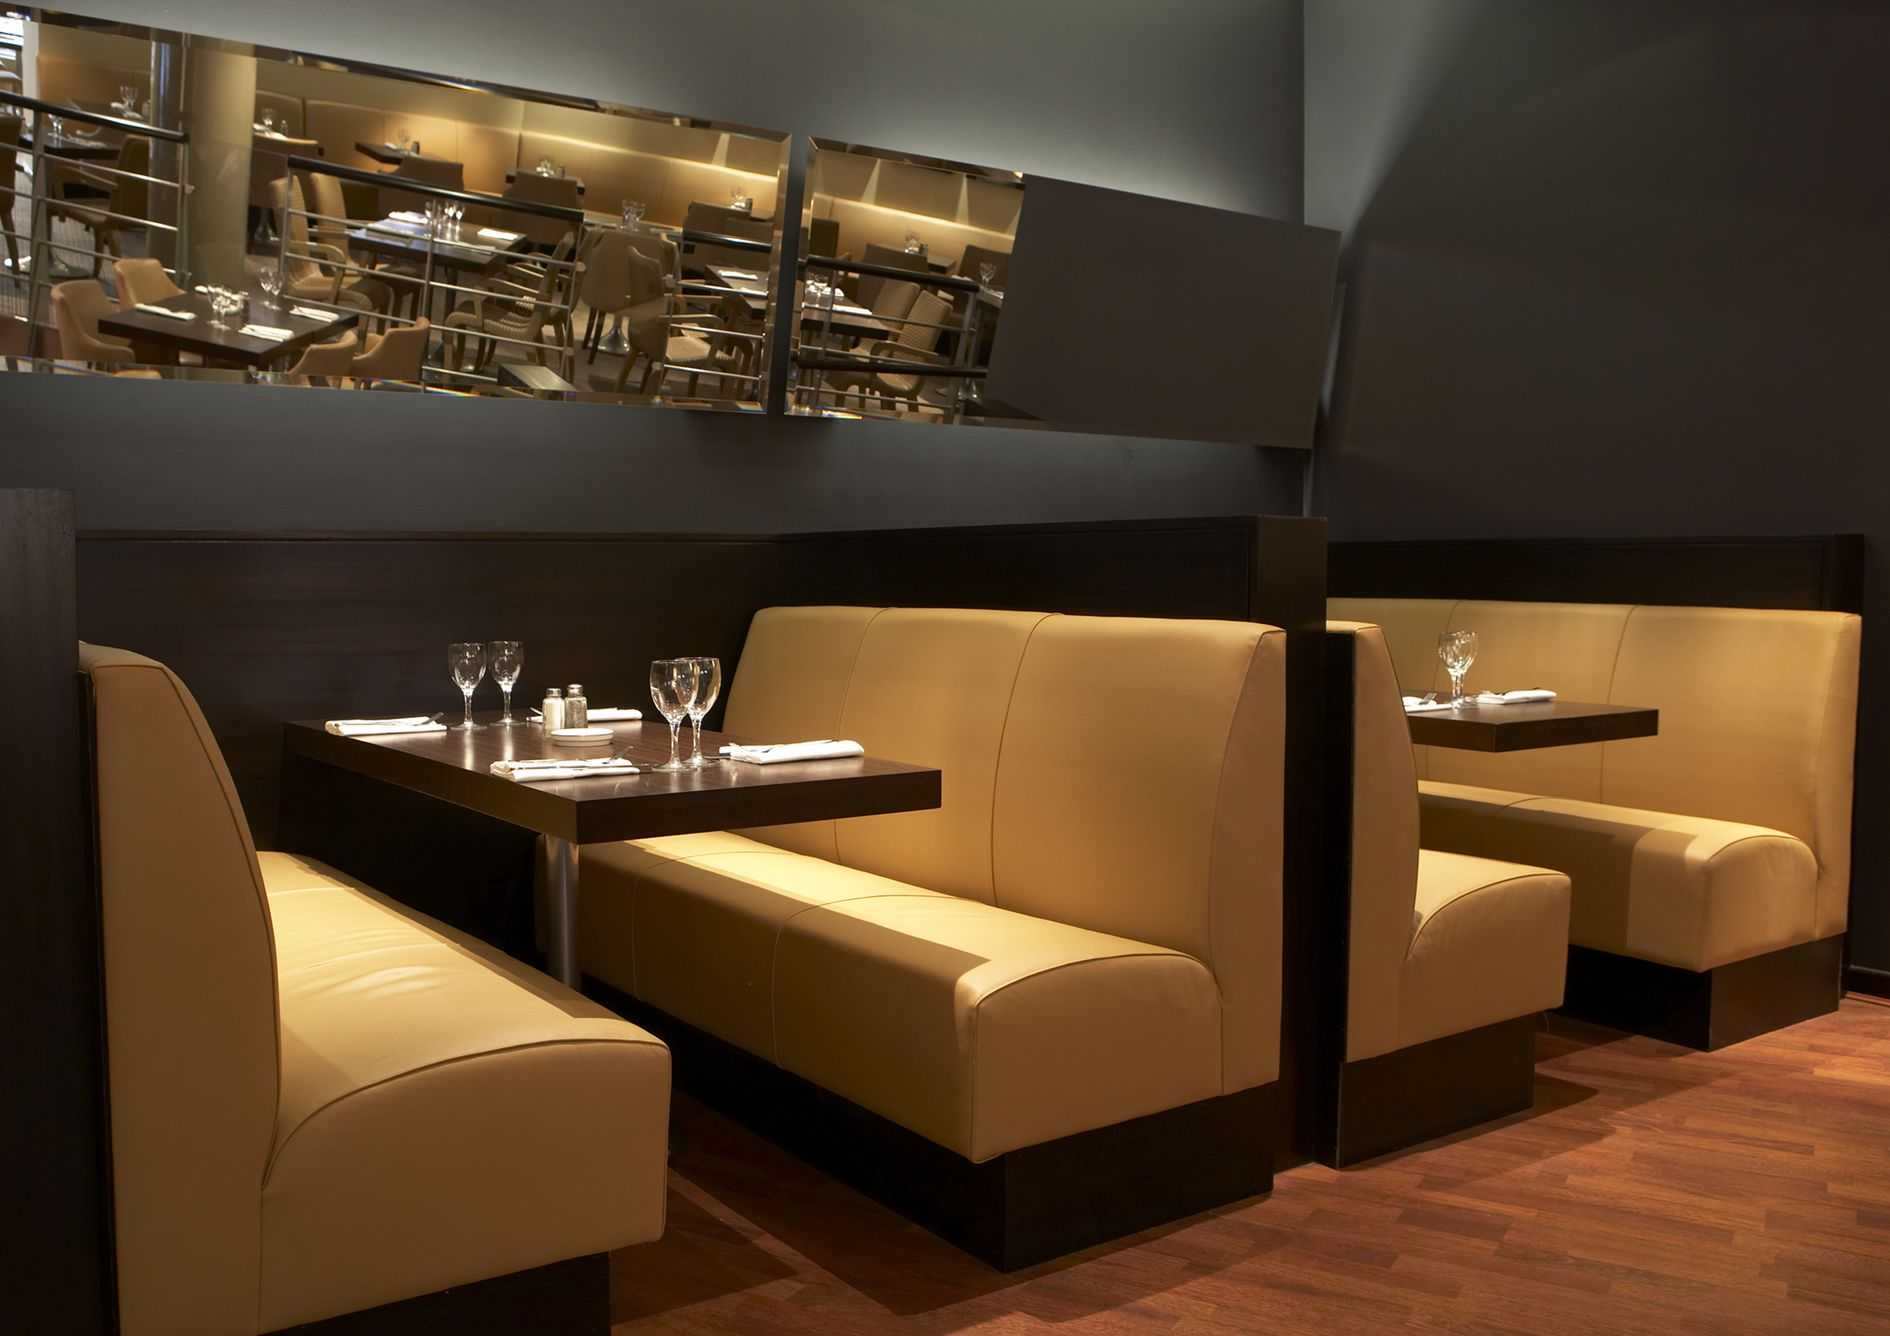 Captivating Banquette Seating Restaurants About Seater Restaurant